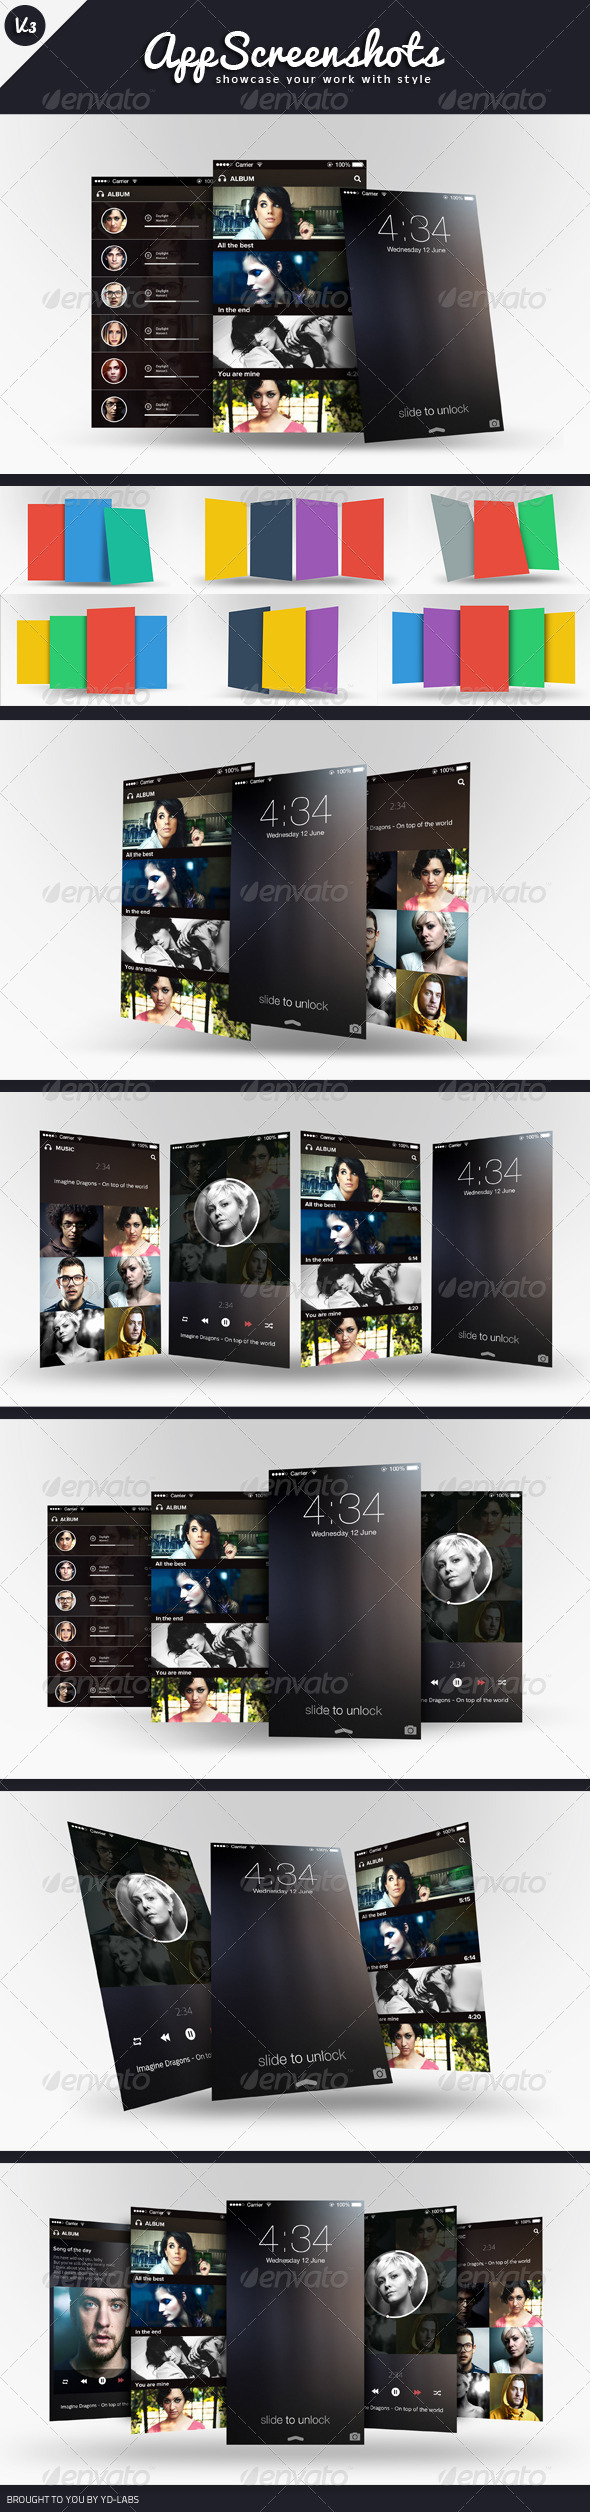 App Screenshot Mockups V3 - Mobile Displays